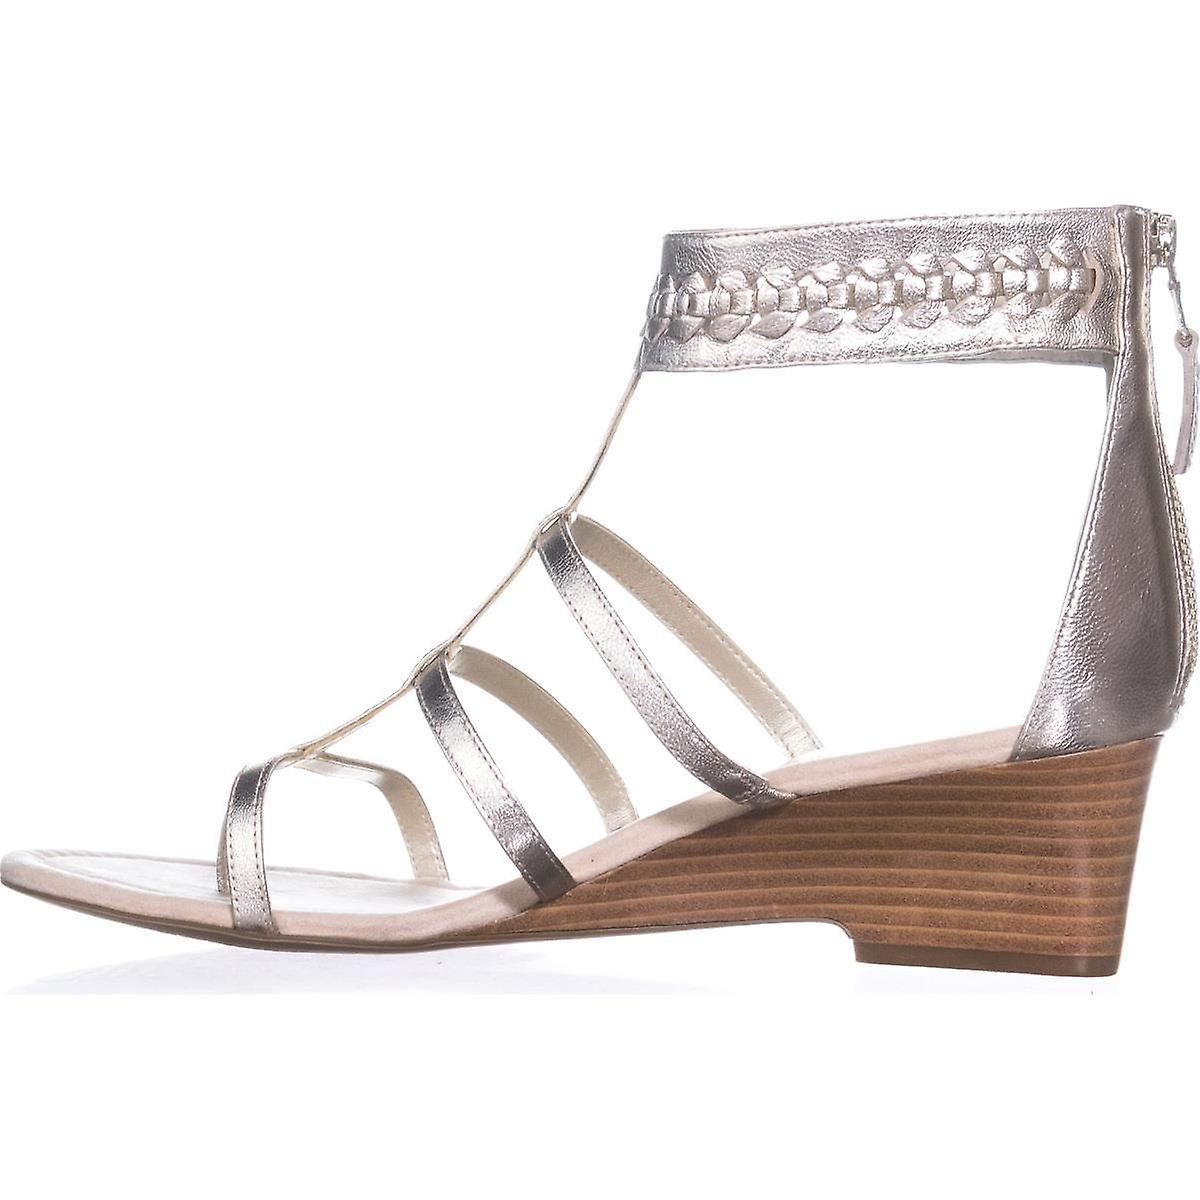 Ralph by Ralph Lauren Womens Meira Leather Open Toe Casual Gladiator Sandals W6Psa